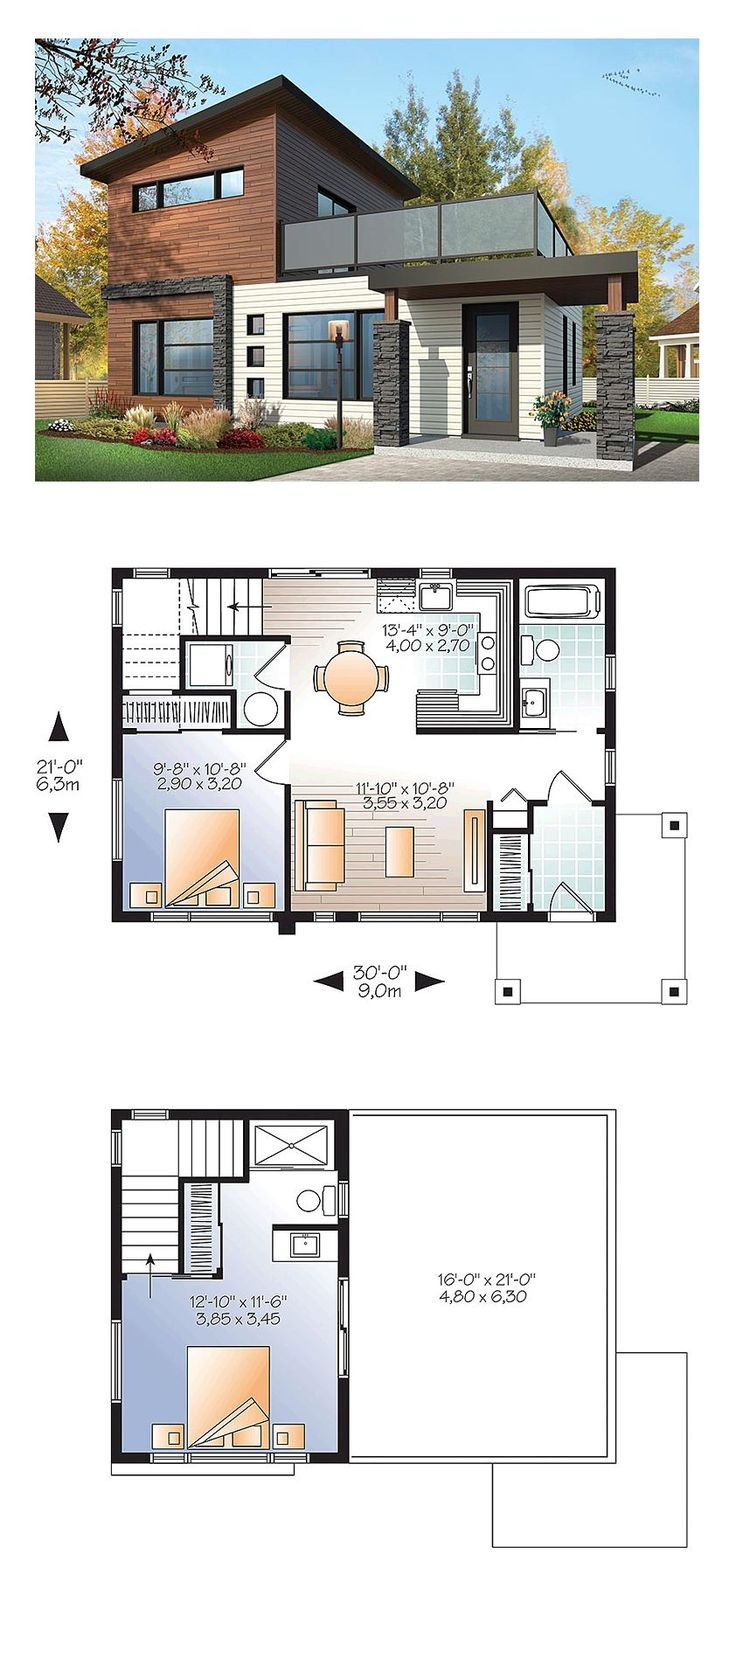 House design 40 x 80 - Modern House Plan 76461 Total Living Area 924 Sq Ft 2